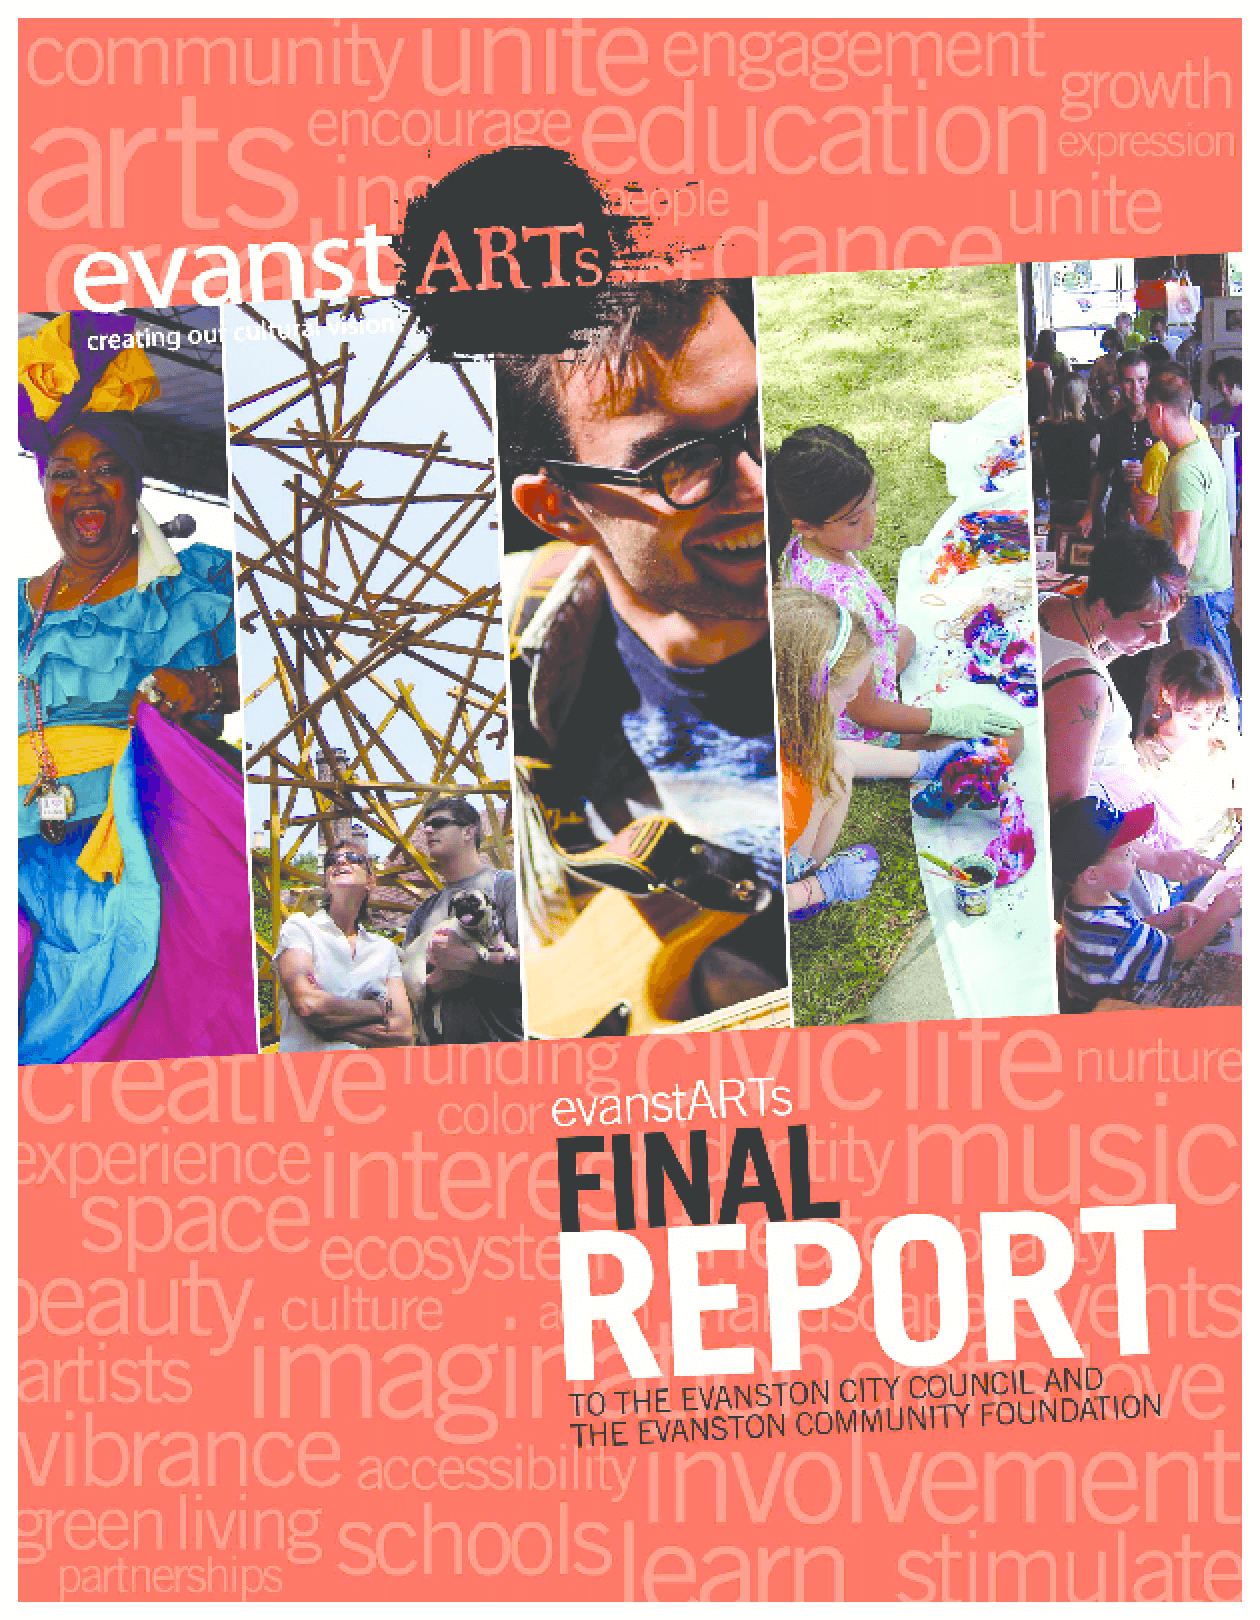 EvanstARTs Final Report: To the Evanston City Council and The Evanston Community Foundation